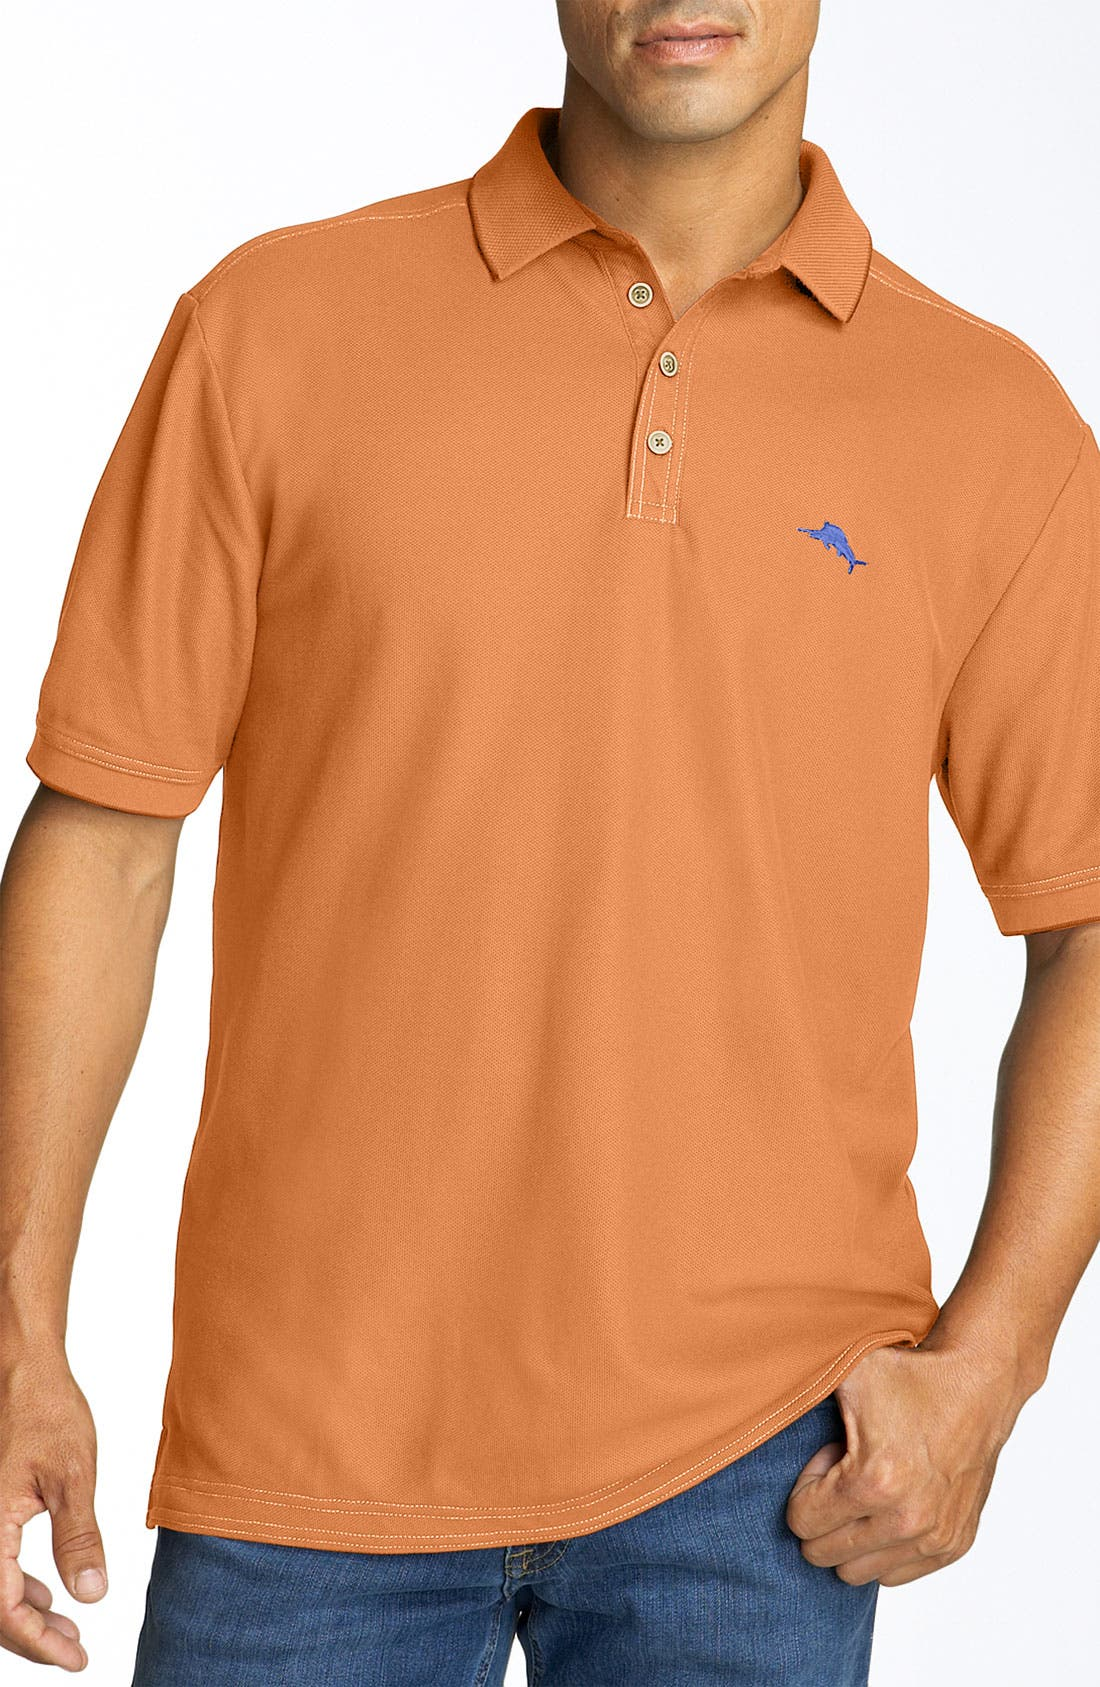 'The Emfielder' Original Fit Piqué Polo,                             Main thumbnail 115, color,